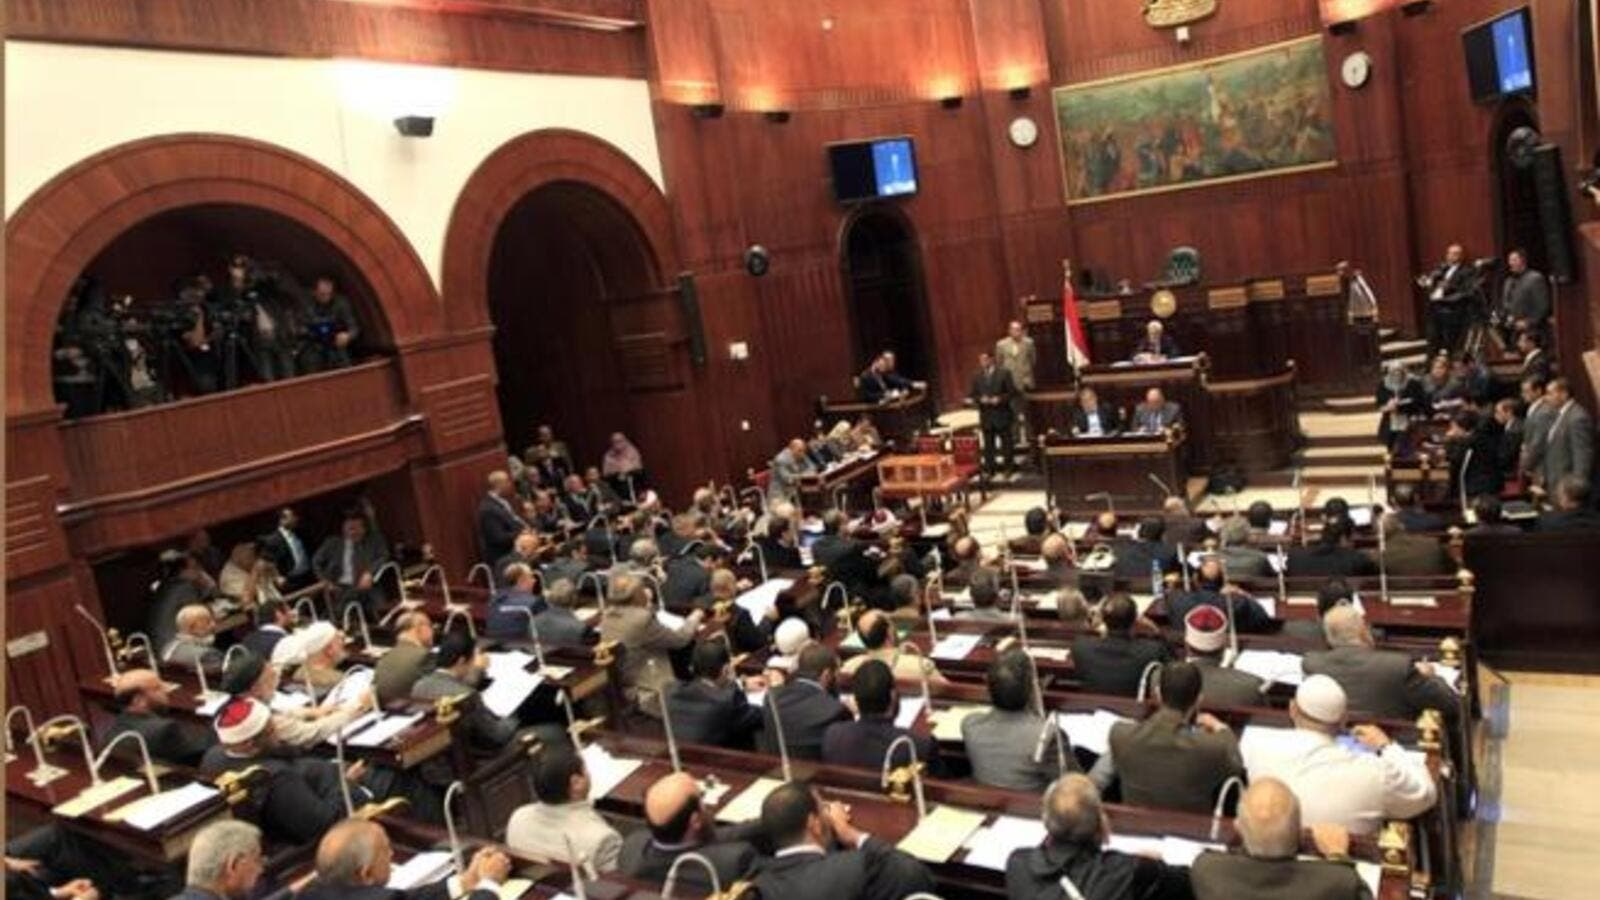 Members of Egypt's constitution committee will meet at the Shura Council for the final vote on a draft Egyptian constitution. [hrw.org]